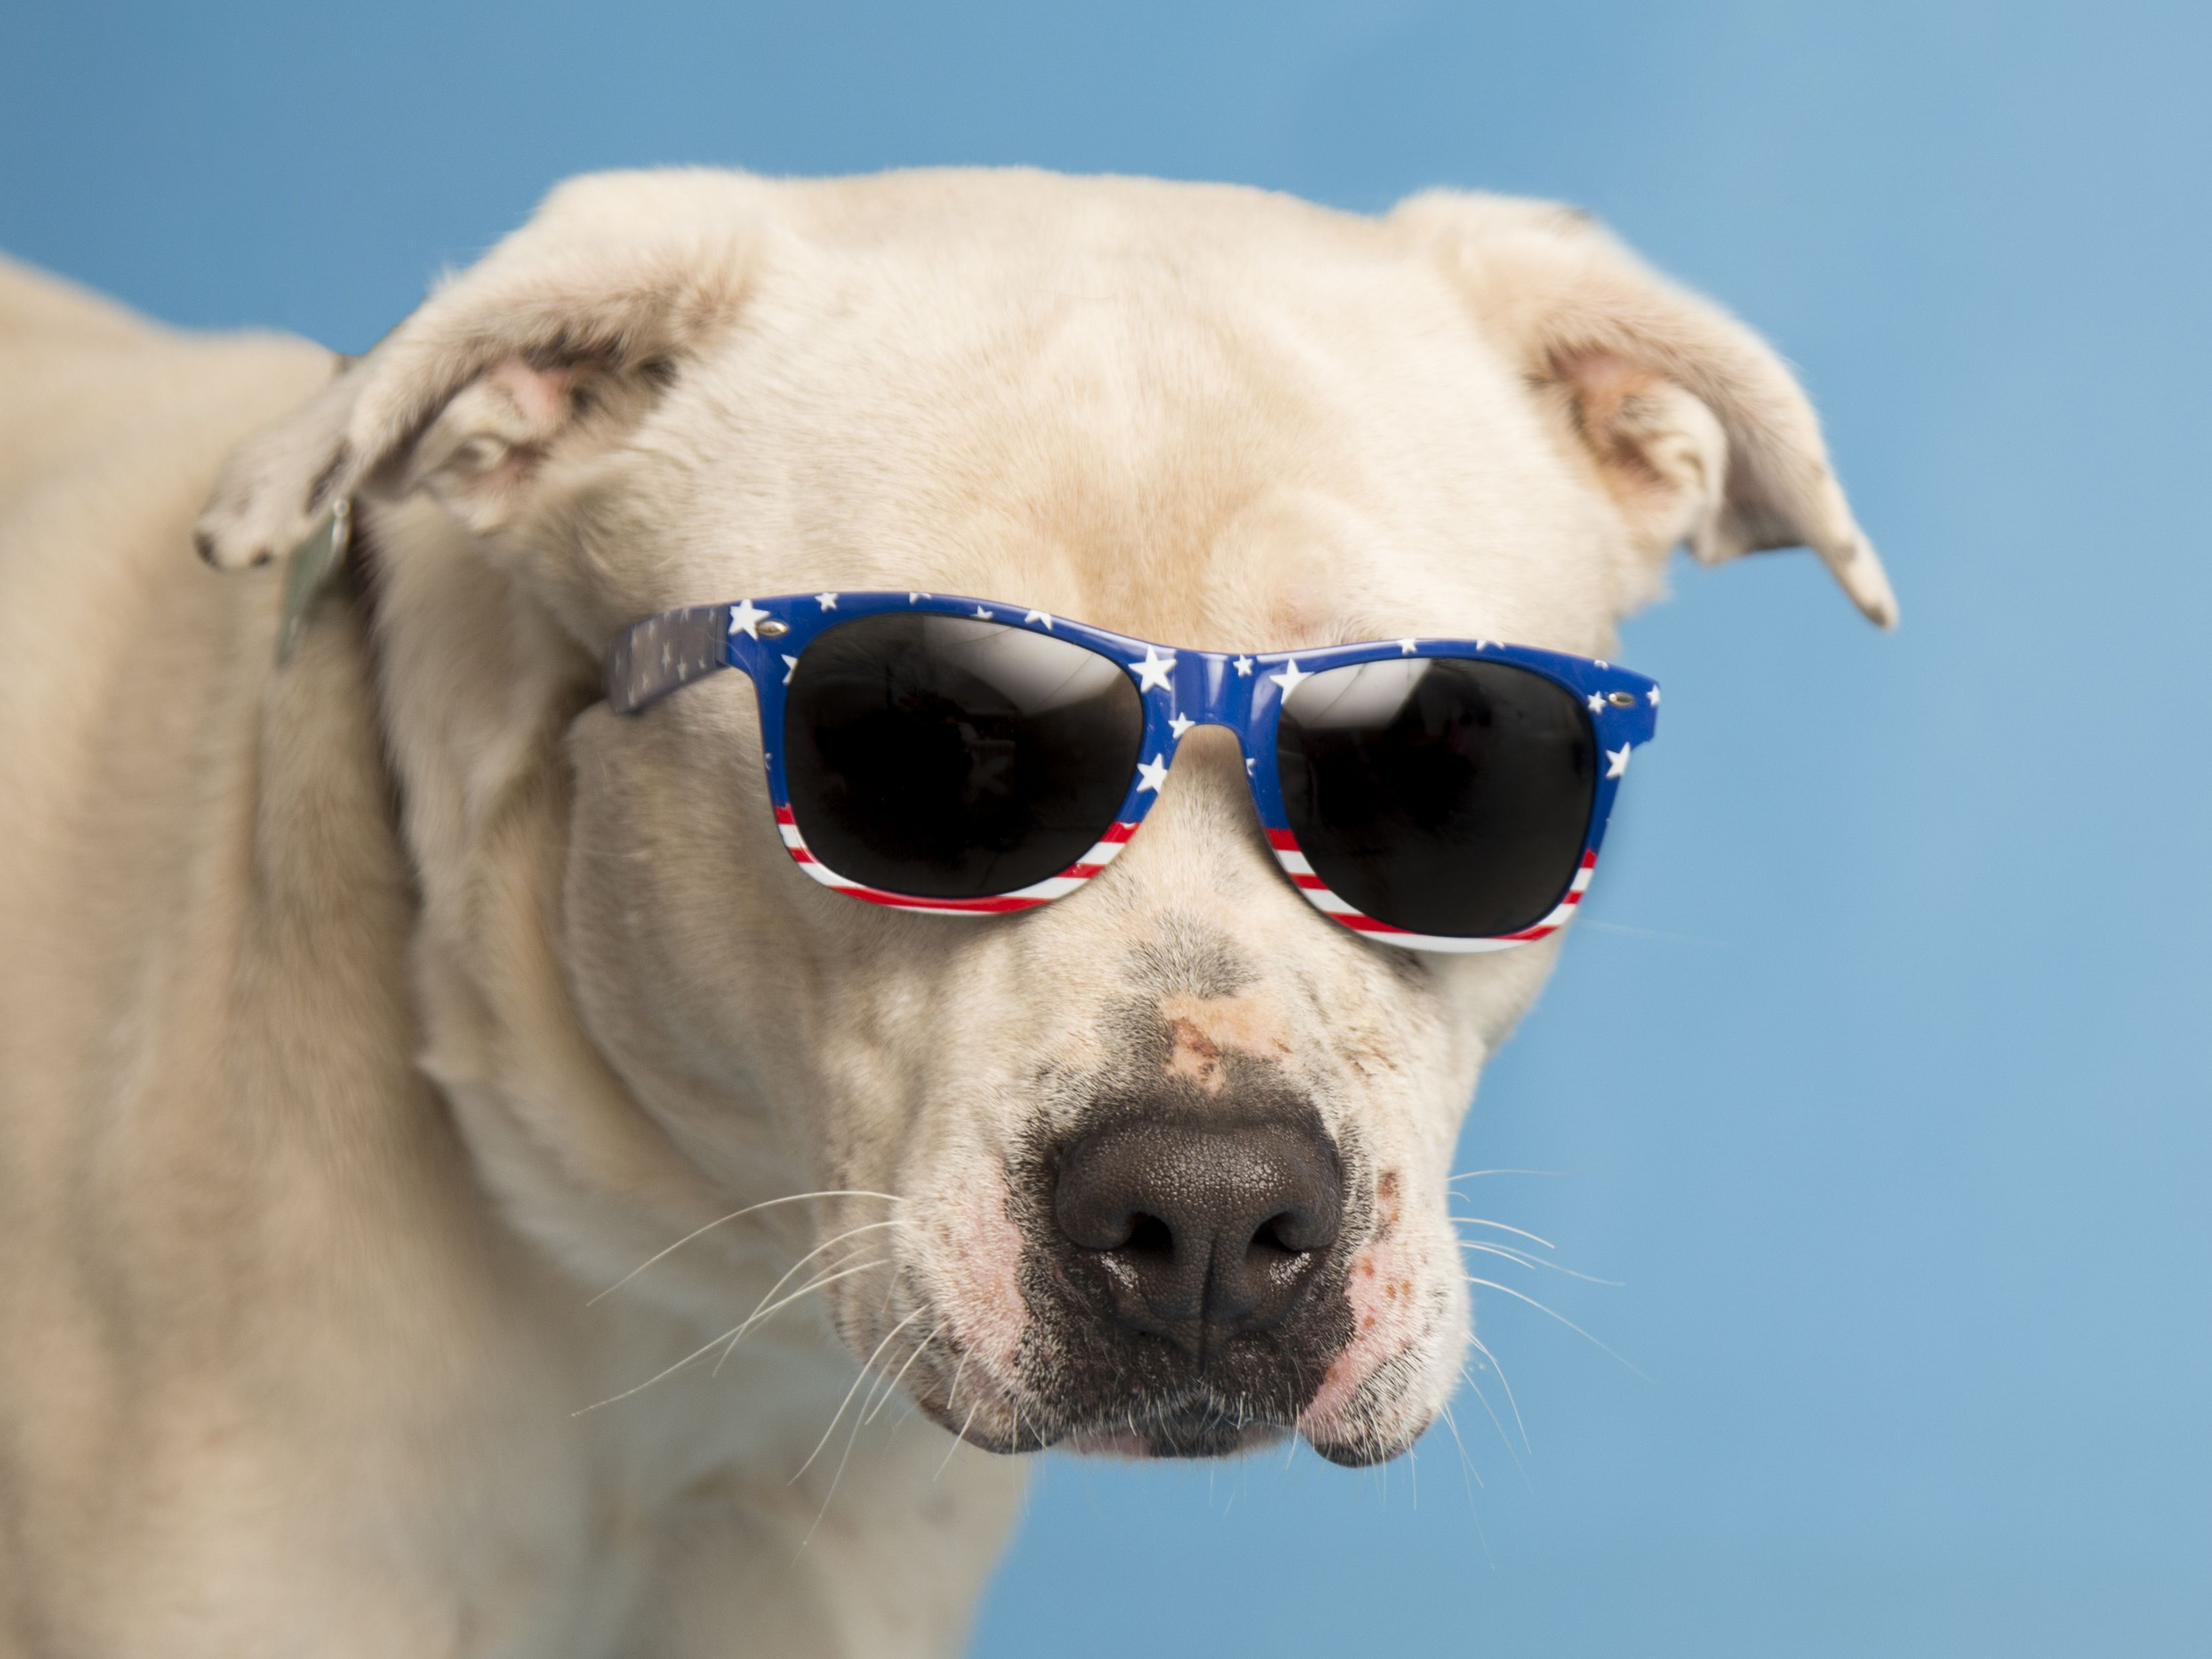 Adoptable pup, Spike, is ready for the weekend. Meet this